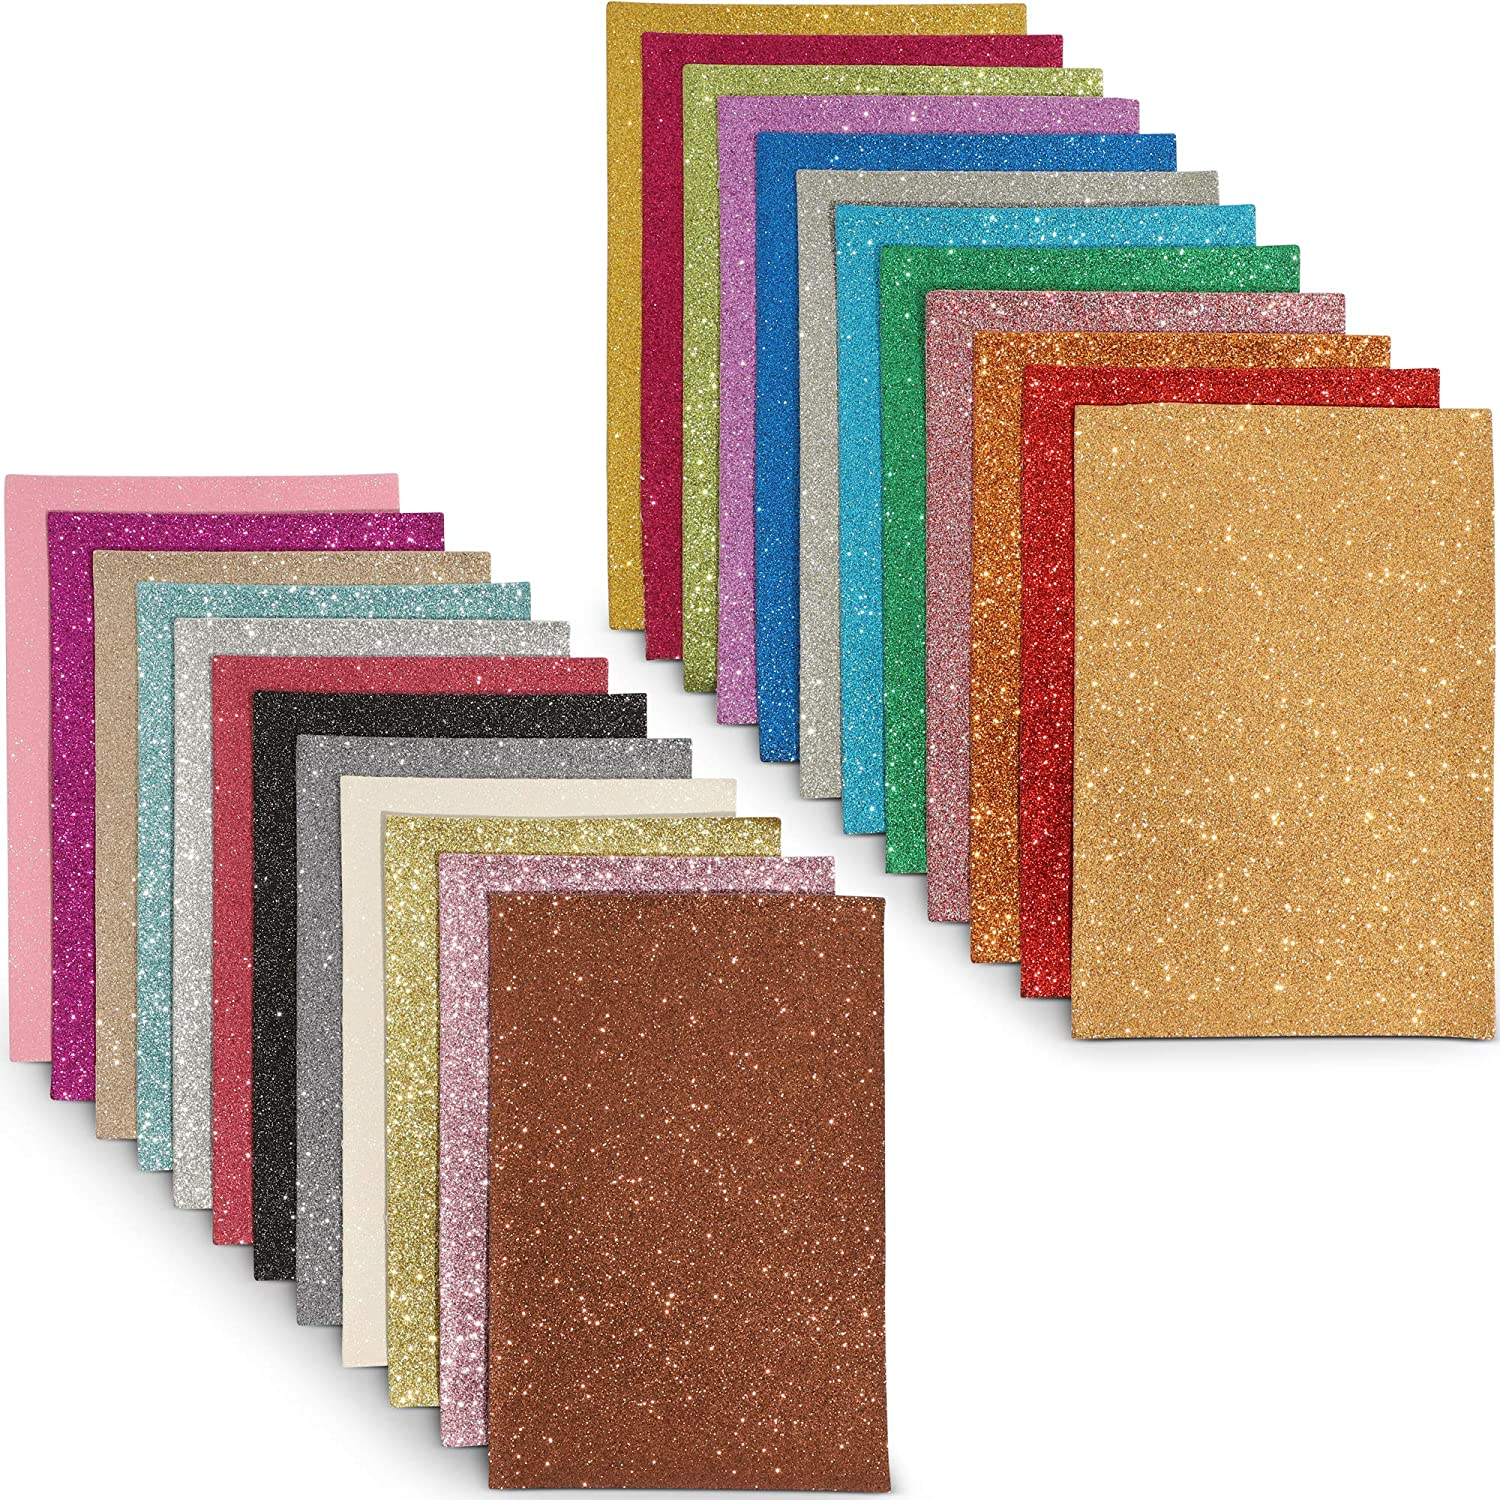 1 mm thick Soft Mixed Upholstery Leather Craft Pack 5 pieces of 20 x 15 cm